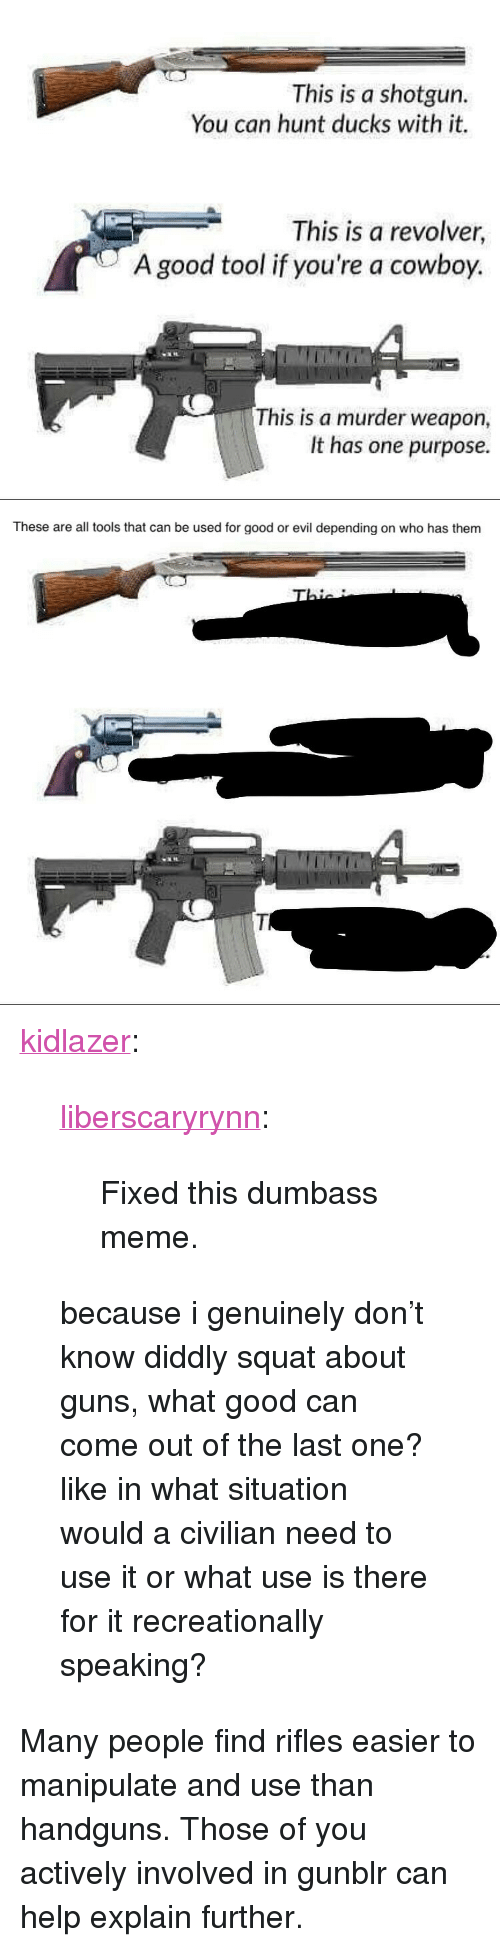 "Guns, Meme, and Tumblr: This is a shotgun.  You can hunt ducks with it.  This is a revolver,  A good tool if you're a cowboy.  This is a murder weapon  It has one purpose.   These are all tools that can be used for good or evil depending on who has them <p><a href=""http://kidlazer.tumblr.com/post/166992798314/liberscaryrynn-fixed-this-dumbass-meme-because"" class=""tumblr_blog"">kidlazer</a>:</p>  <blockquote><p><a href=""https://liberscaryrynn.tumblr.com/post/166992519674/fixed-this-dumbass-meme"" class=""tumblr_blog"">liberscaryrynn</a>:</p><blockquote><p>Fixed this dumbass meme.</p></blockquote> <p>because i genuinely don't know diddly squat about guns, what good can come out of the last one? like in what situation would a civilian need to use it or what use is there for it recreationally speaking? </p></blockquote>  <p>Many people find rifles easier to manipulate and use than handguns. Those of you actively involved in gunblr can help explain further.</p>"